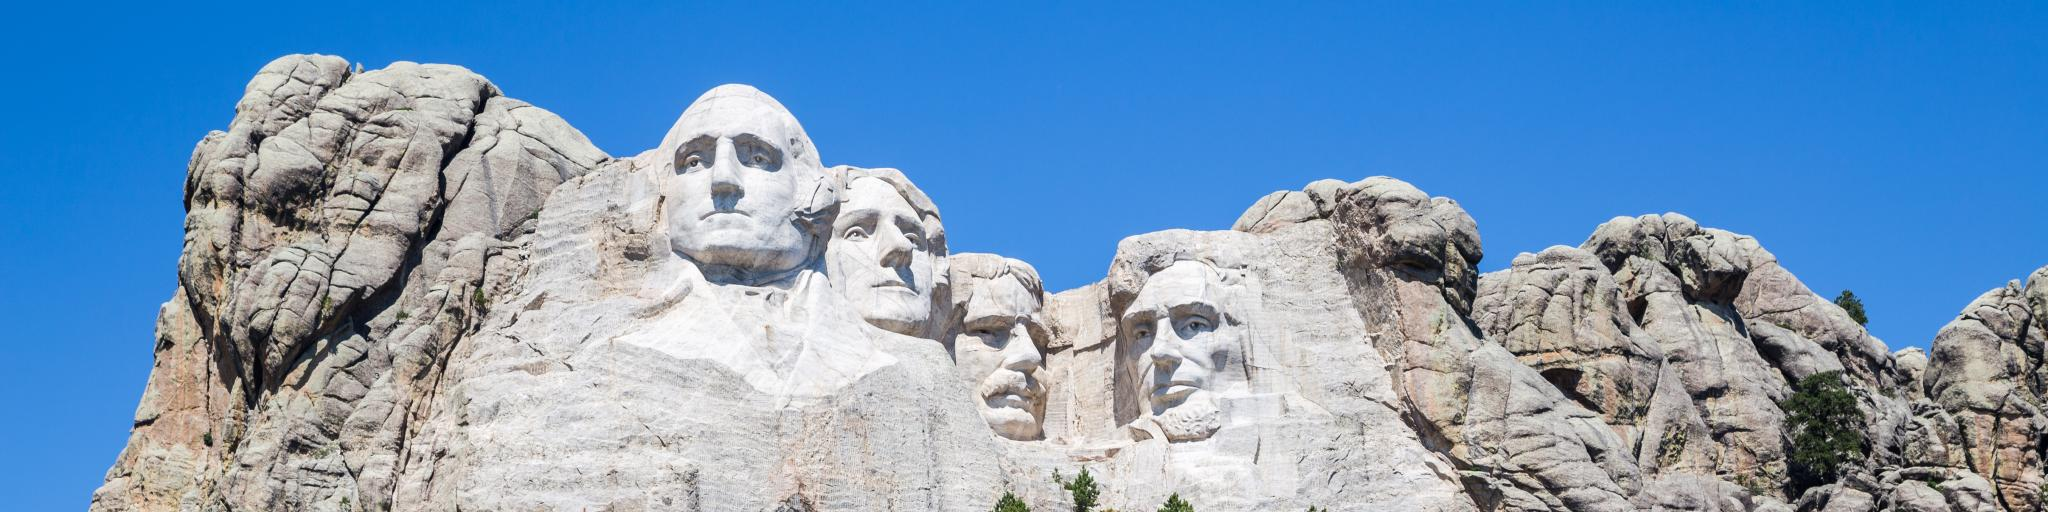 Shows the faces of past US presidents carved on granite as a massive sculpture on Mount Rushmore during a sunny day